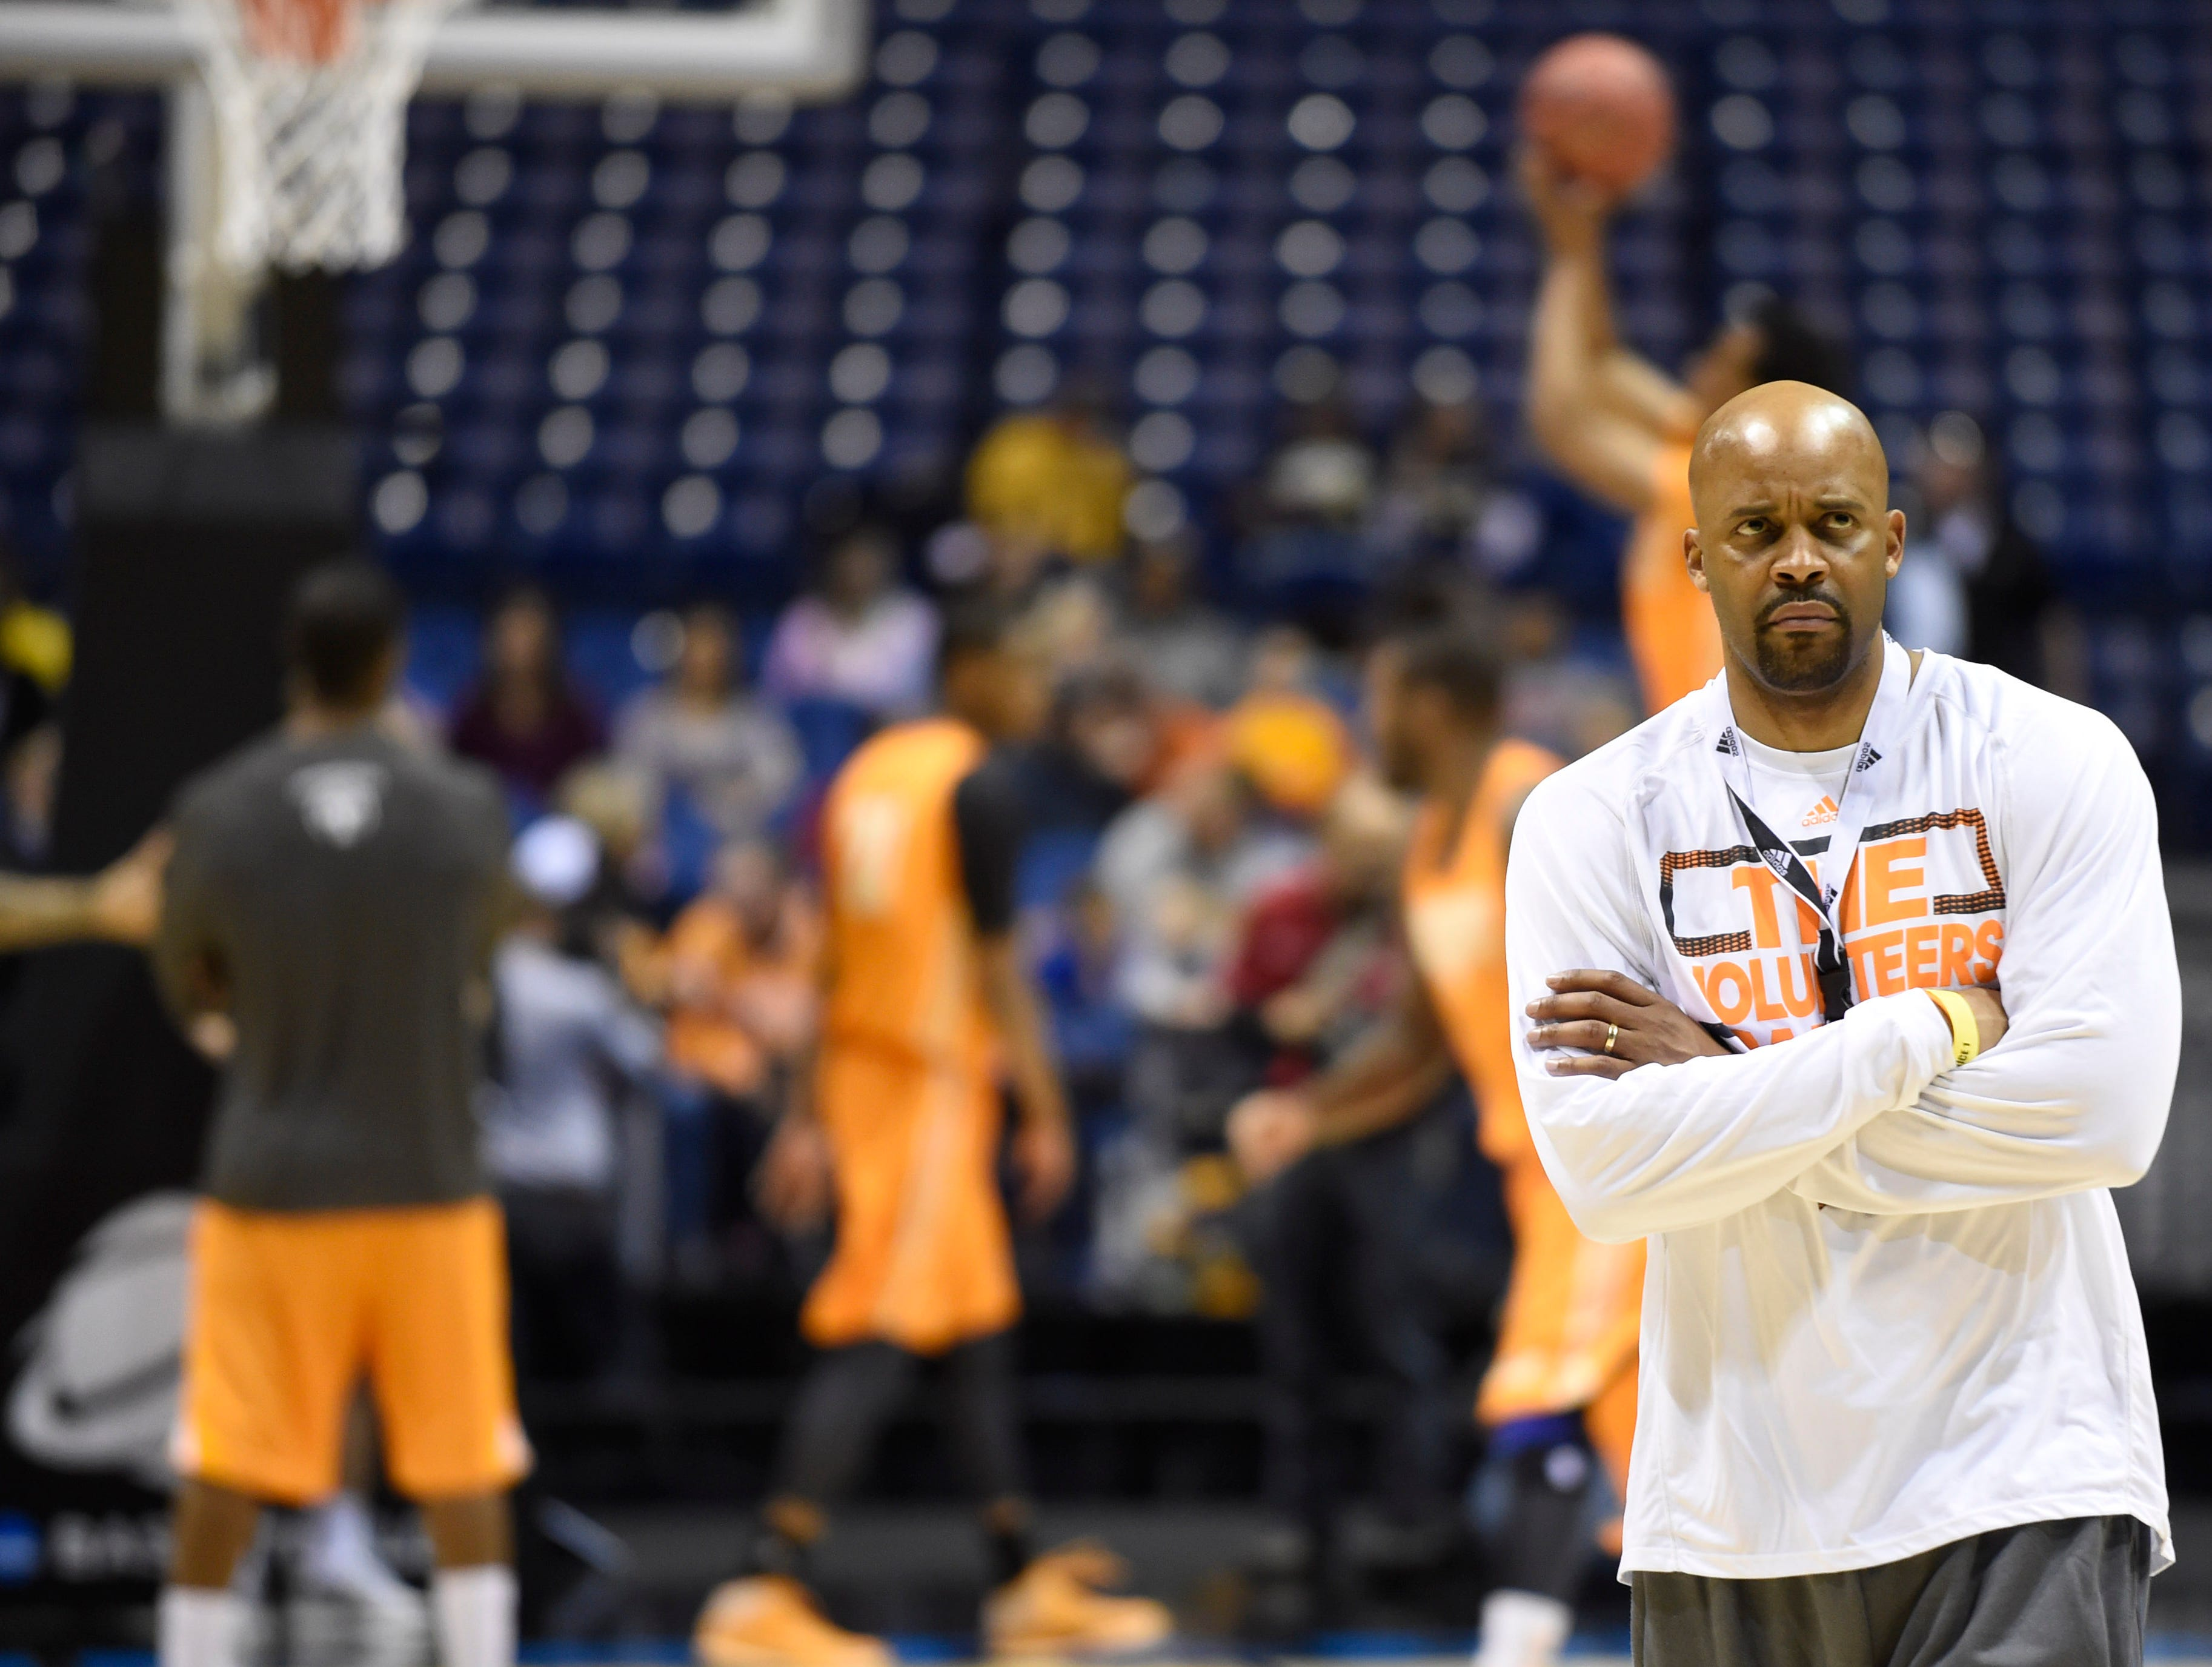 Tennessee head coach Cuonzo Martin watches his team practice before Tennessee's NCAA Sweet Sixteen game against Michigan at Lucas Oil Stadium in Indianapolis, Ind. on Thursday, March 27, 2014.